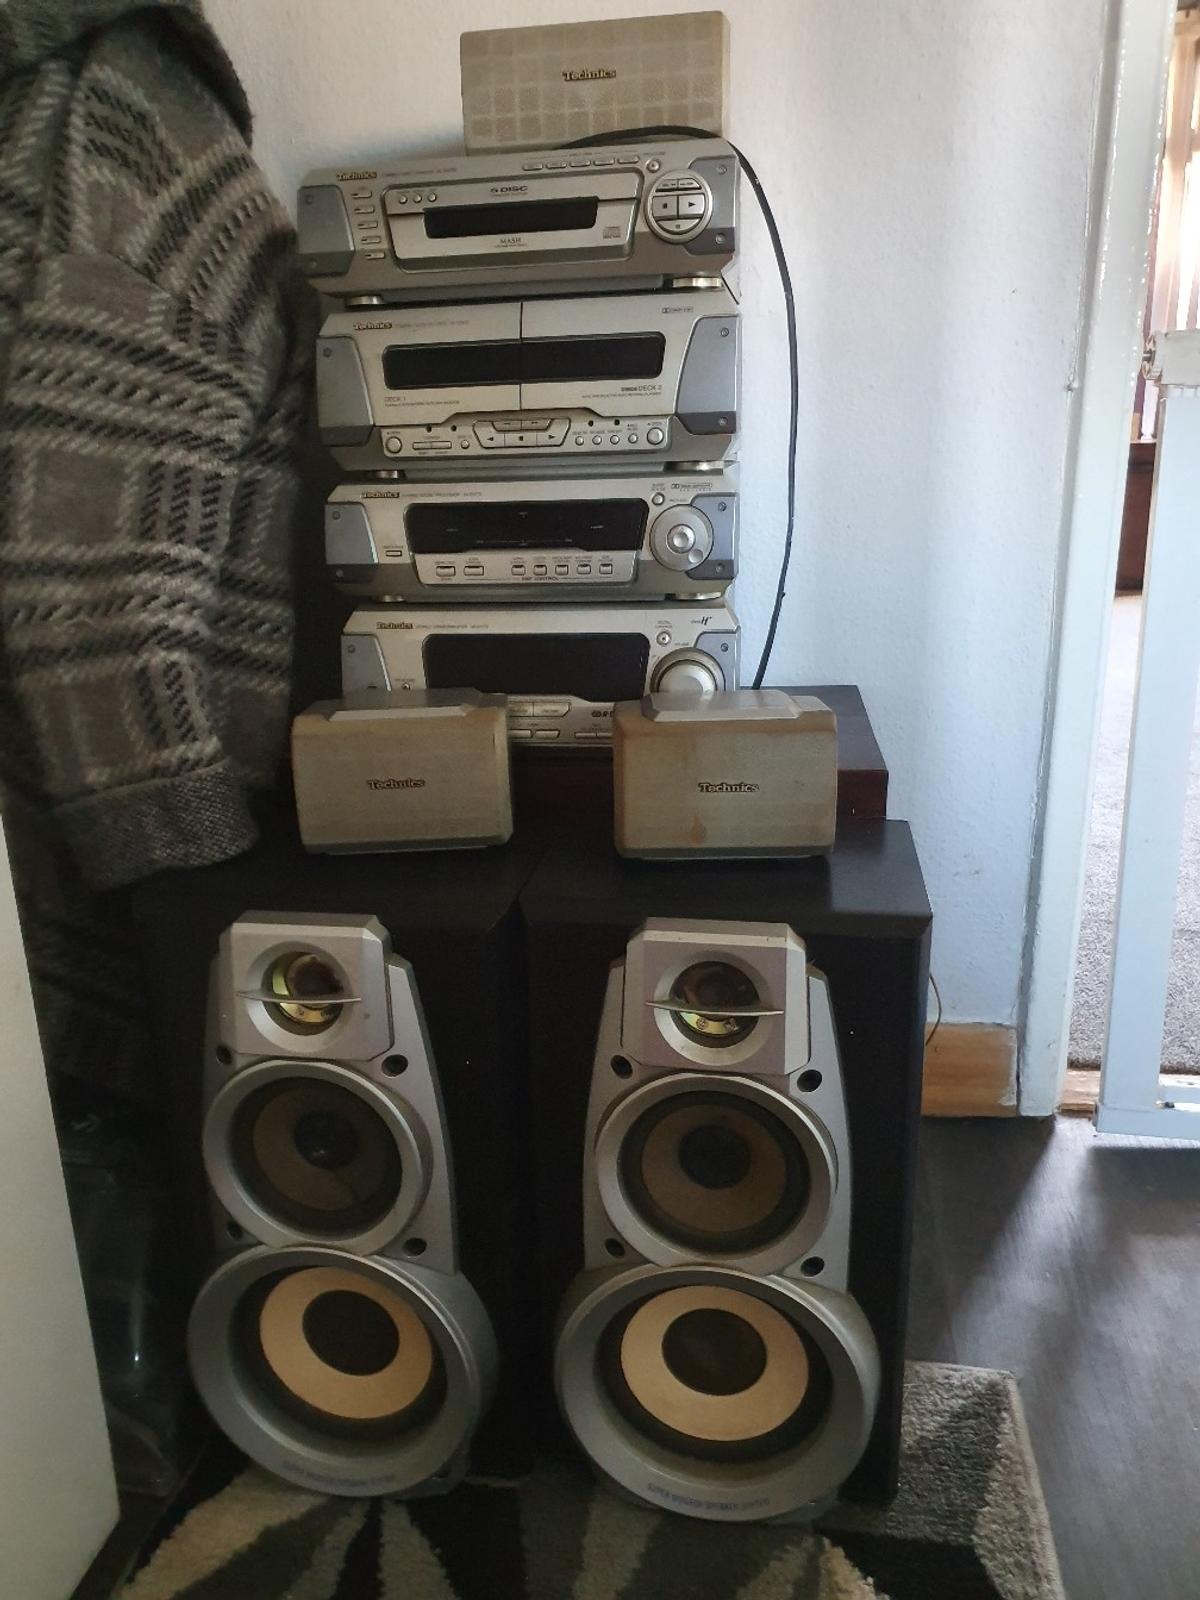 technics hifi system. surround sound, tape, radio, 5 disc CD player. works as it should. speakers work but top tweeters are tatty.